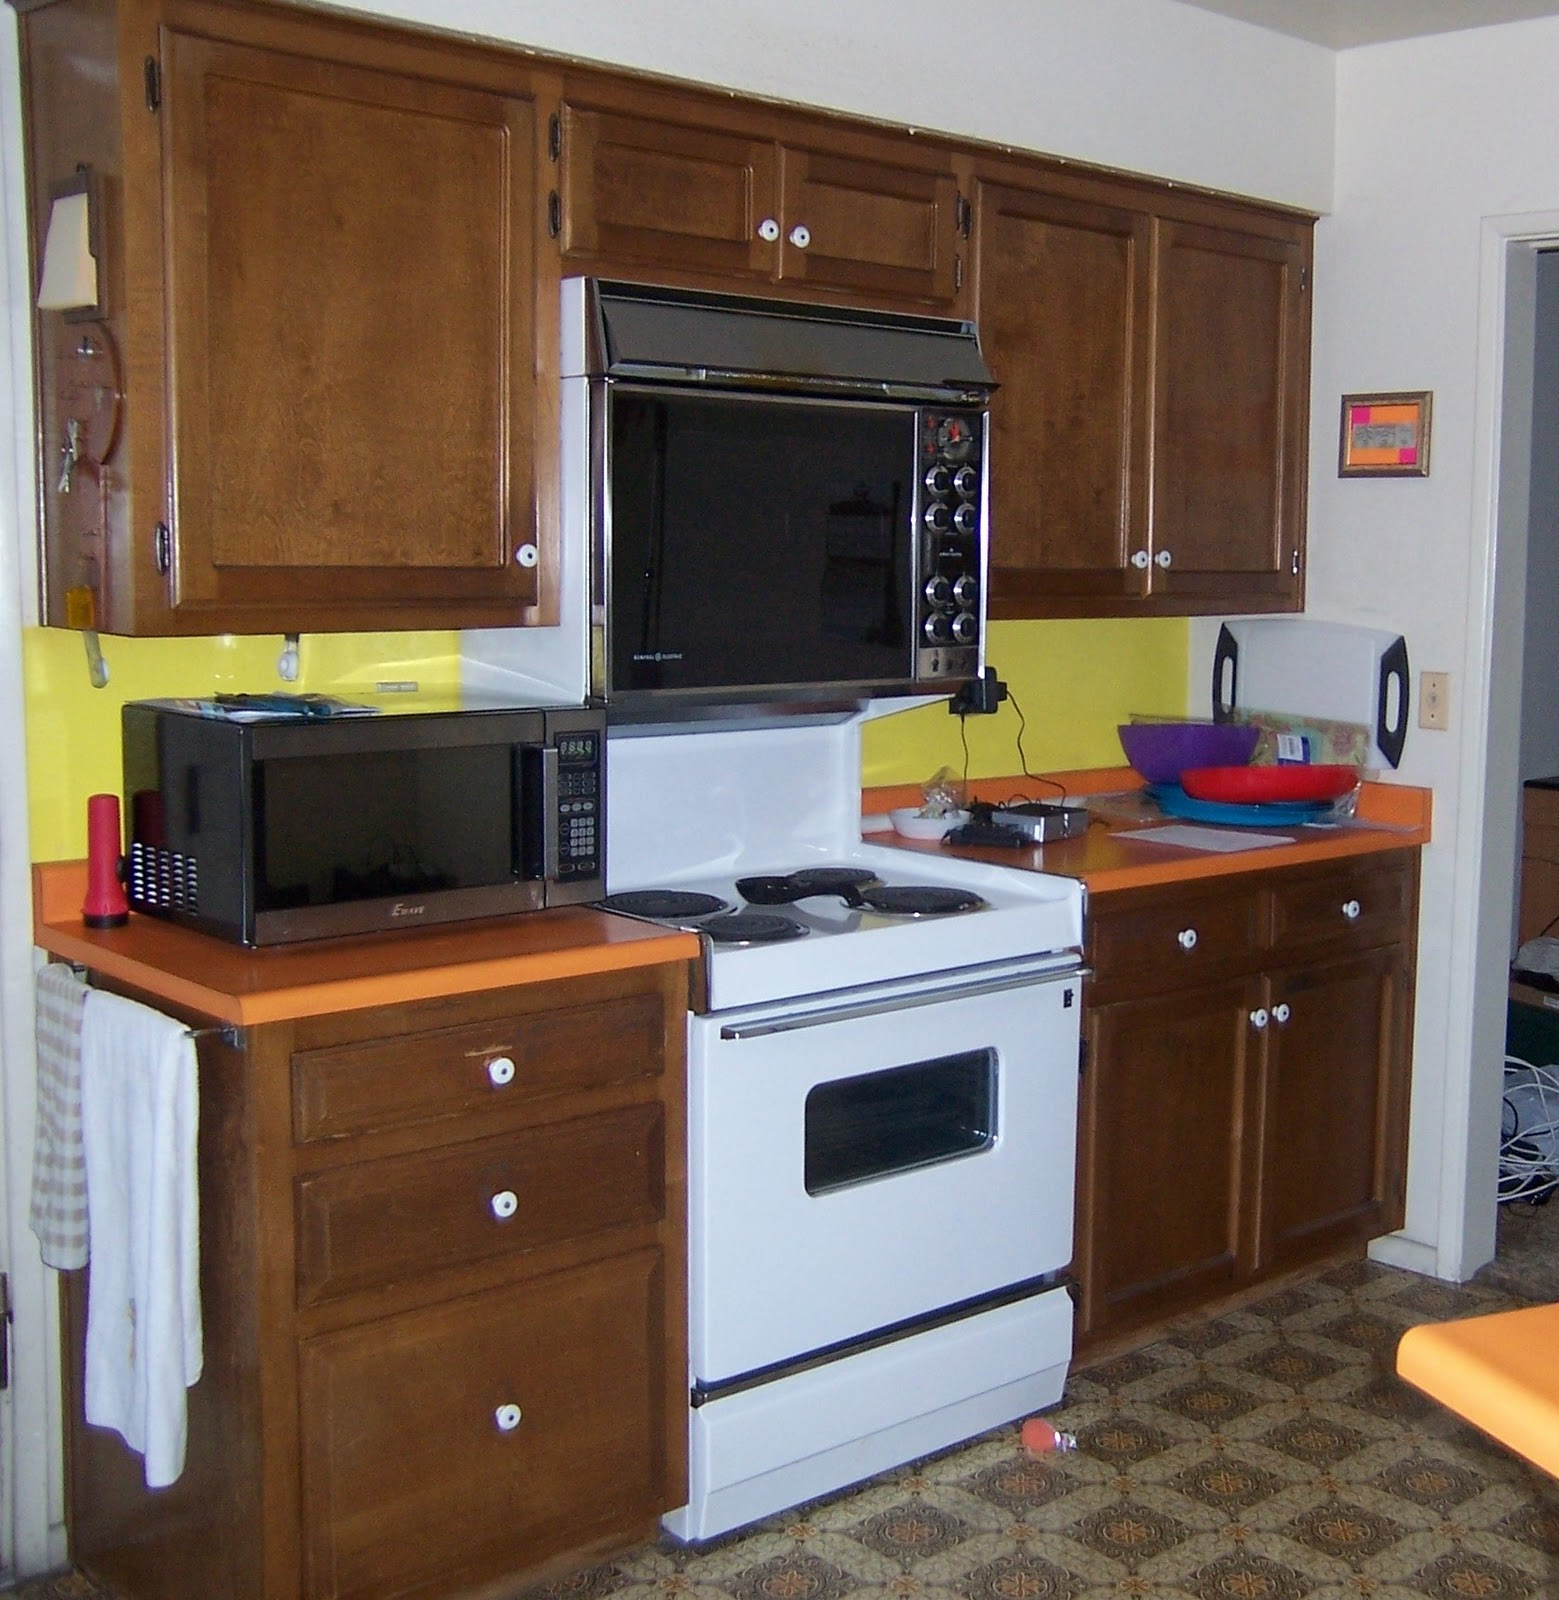 Kitchen Renovation Tucson: PLUS ULTRA ...there Is More Beyond...: Kitchen Gone Mexican